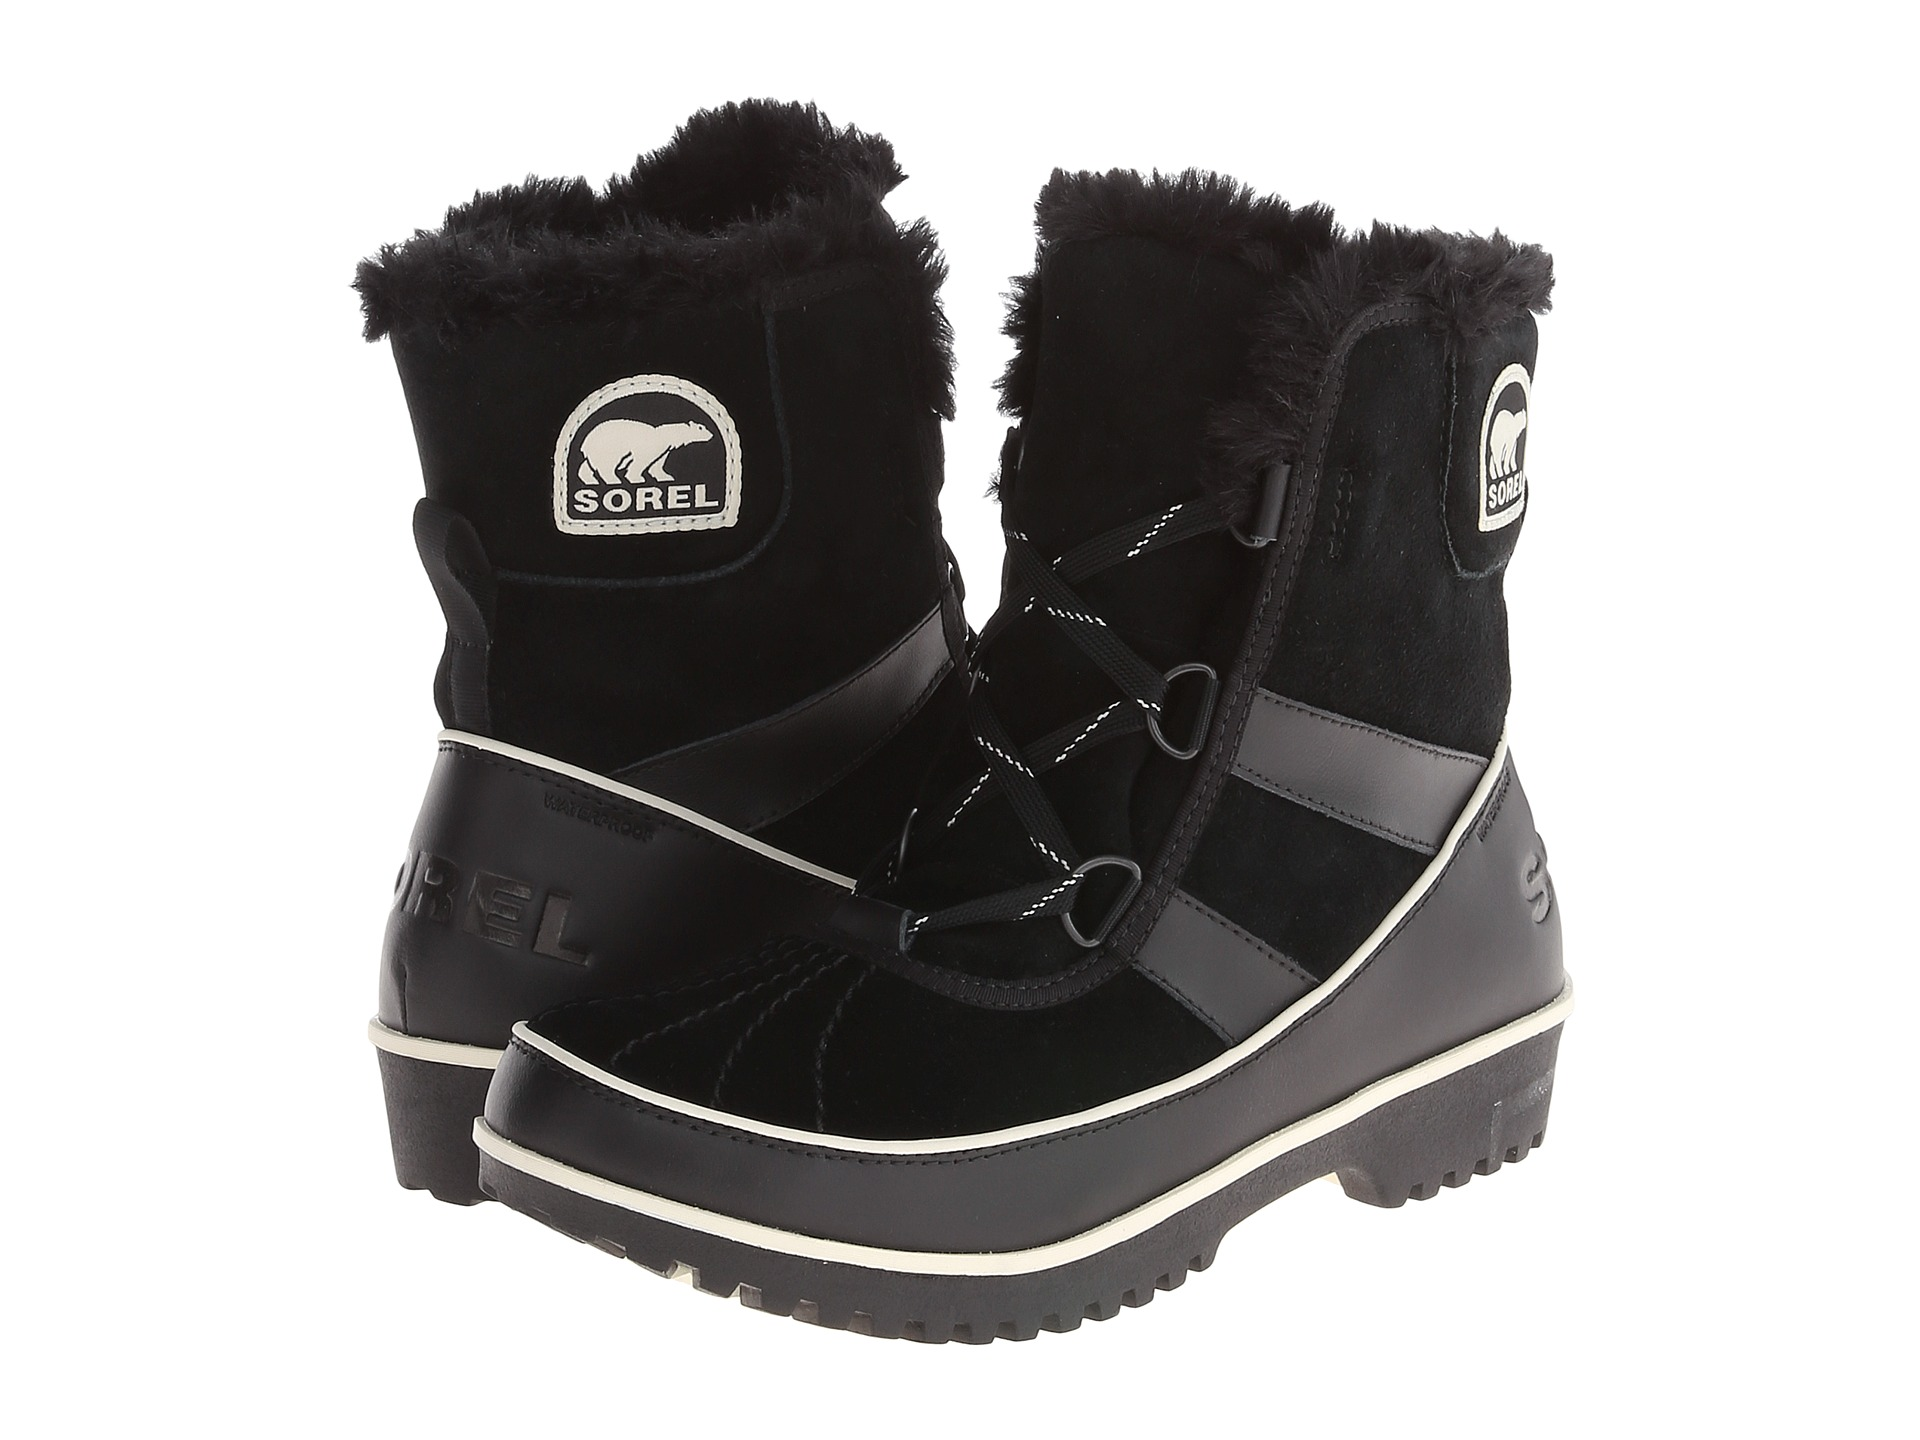 Canadian SOREL Ice Bear Wool Shoes Waterproof and Ski-proof Tivoli II Warming Temperature Scale-20